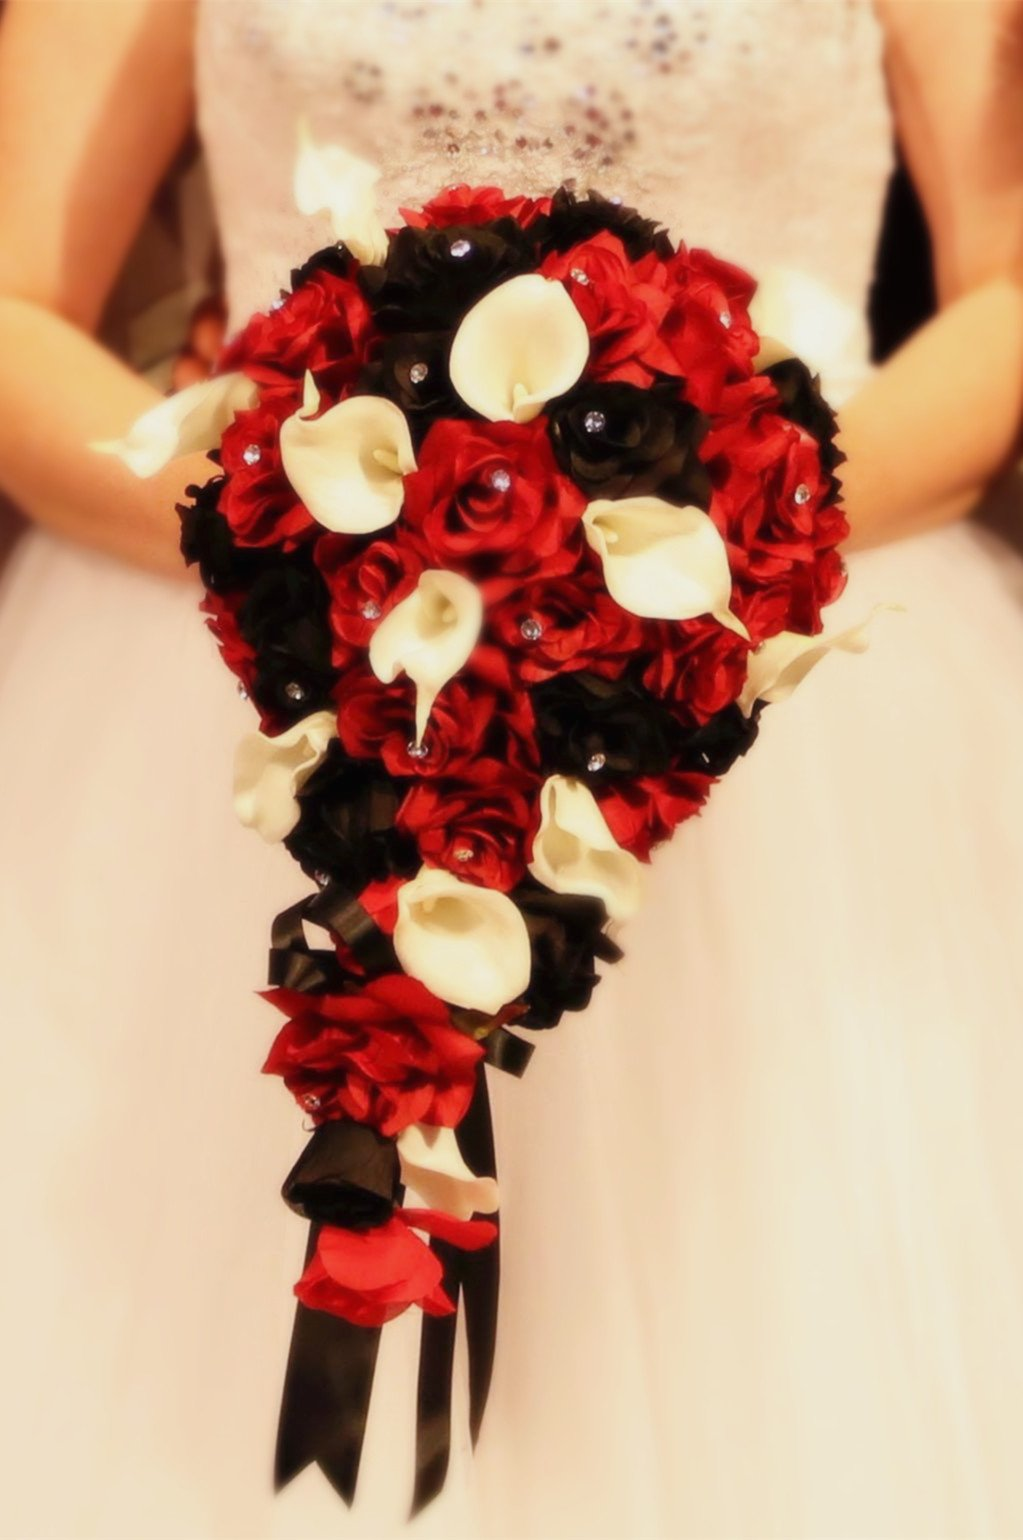 Angel-Isabella-Build-Your-Wedding-Package-Artificial-Flower-Bouquet-Corsage-Boutonniere-Rose-Calla-Lily-Red-White-Black-Wedding-Theme-Long-Cascade-Bouquet